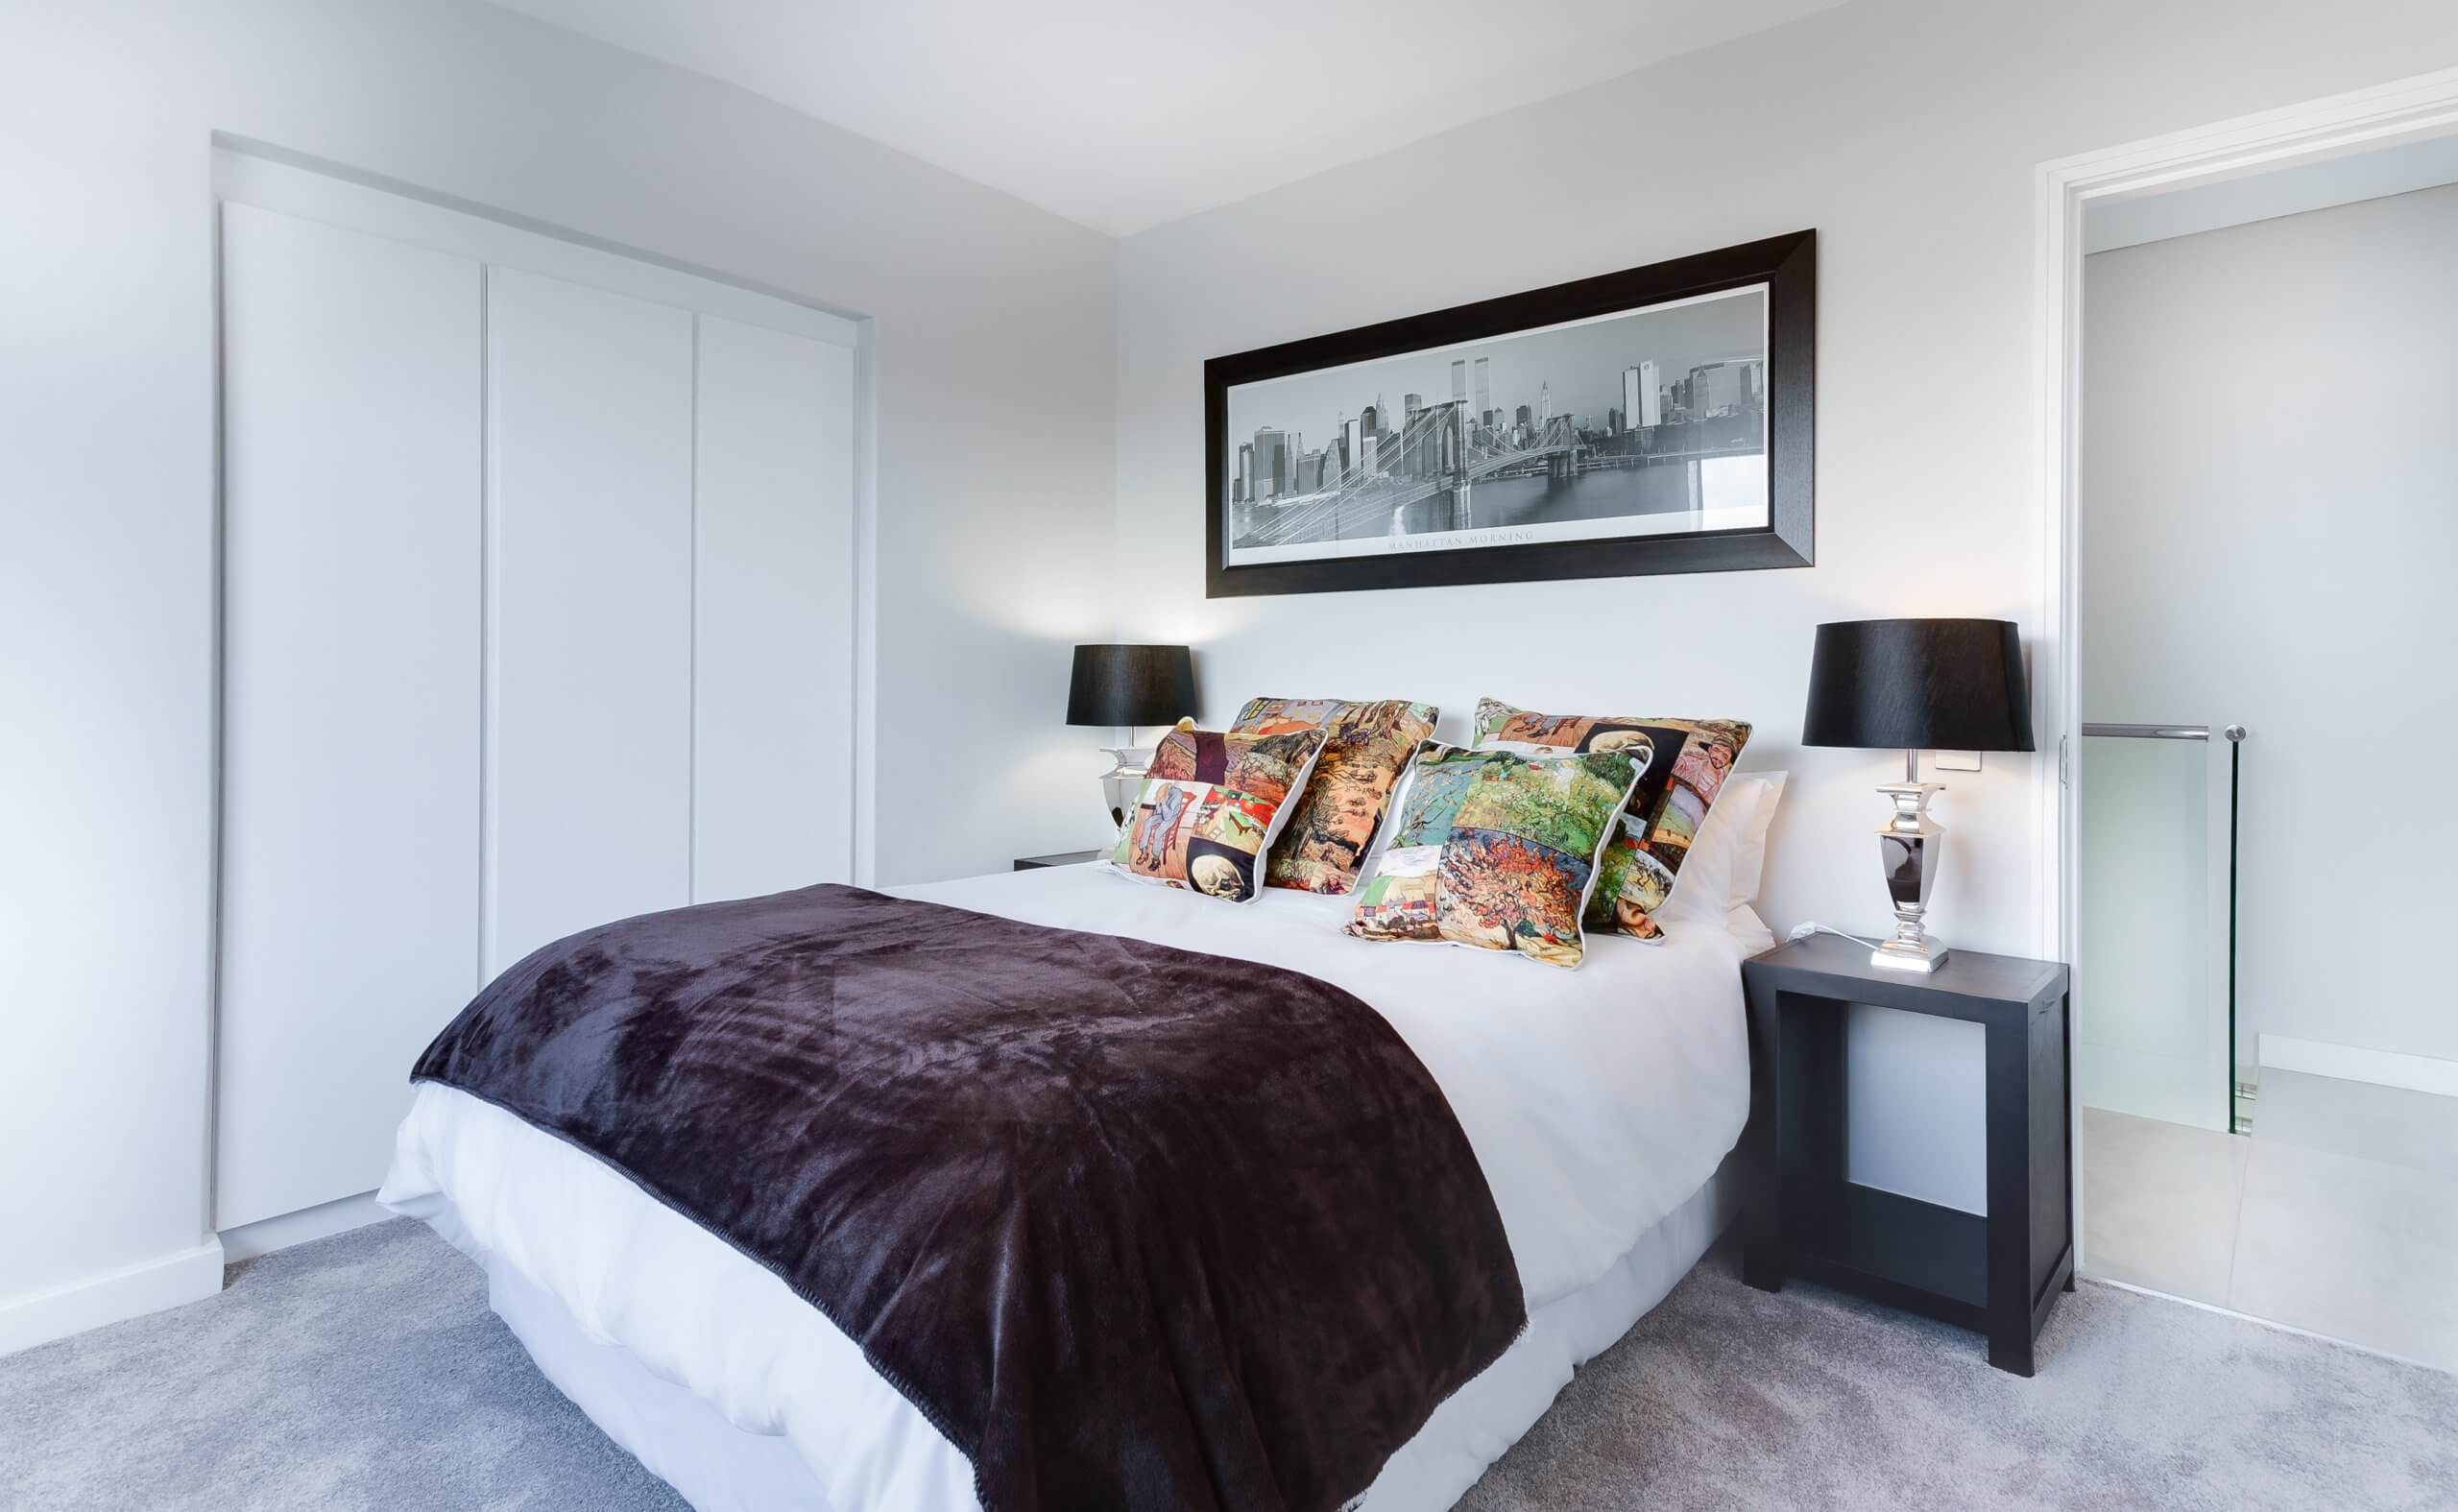 A brand new mattress in a bedroom. Getting a new bed can help with better sleep.